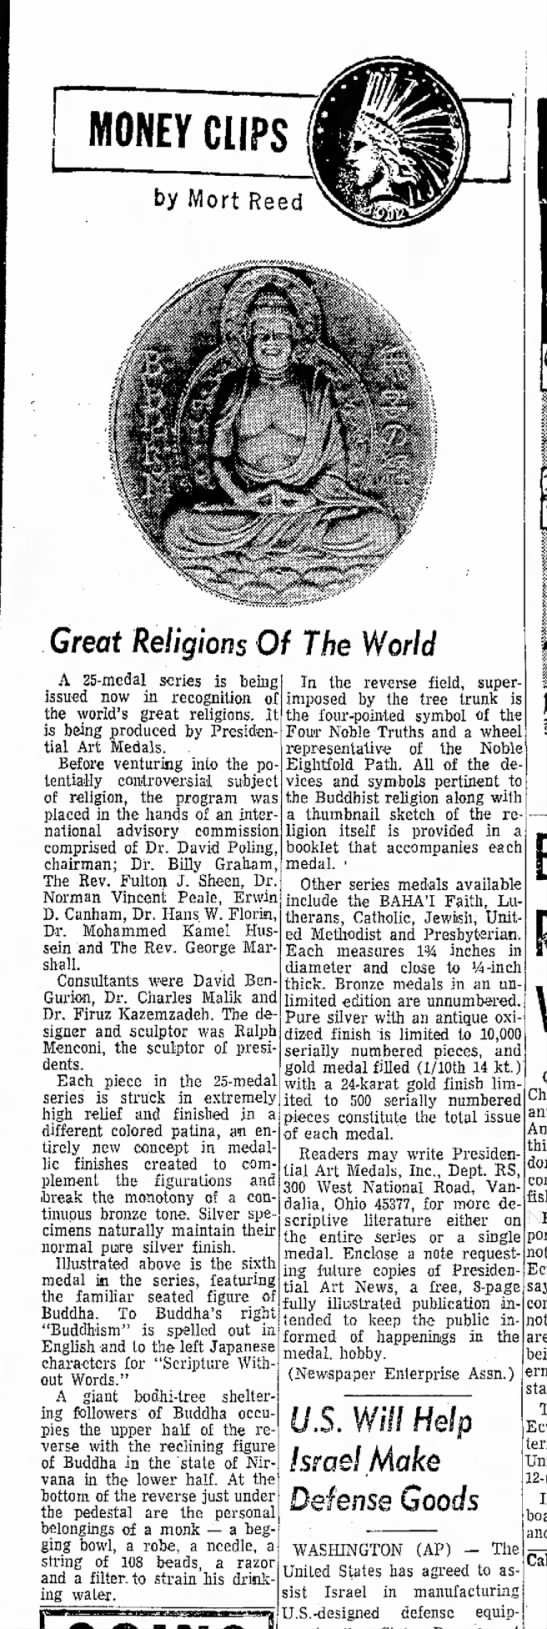 1972-01-15 'Great Religions of the World'. Dr. Kazemzadeh mentioned. -